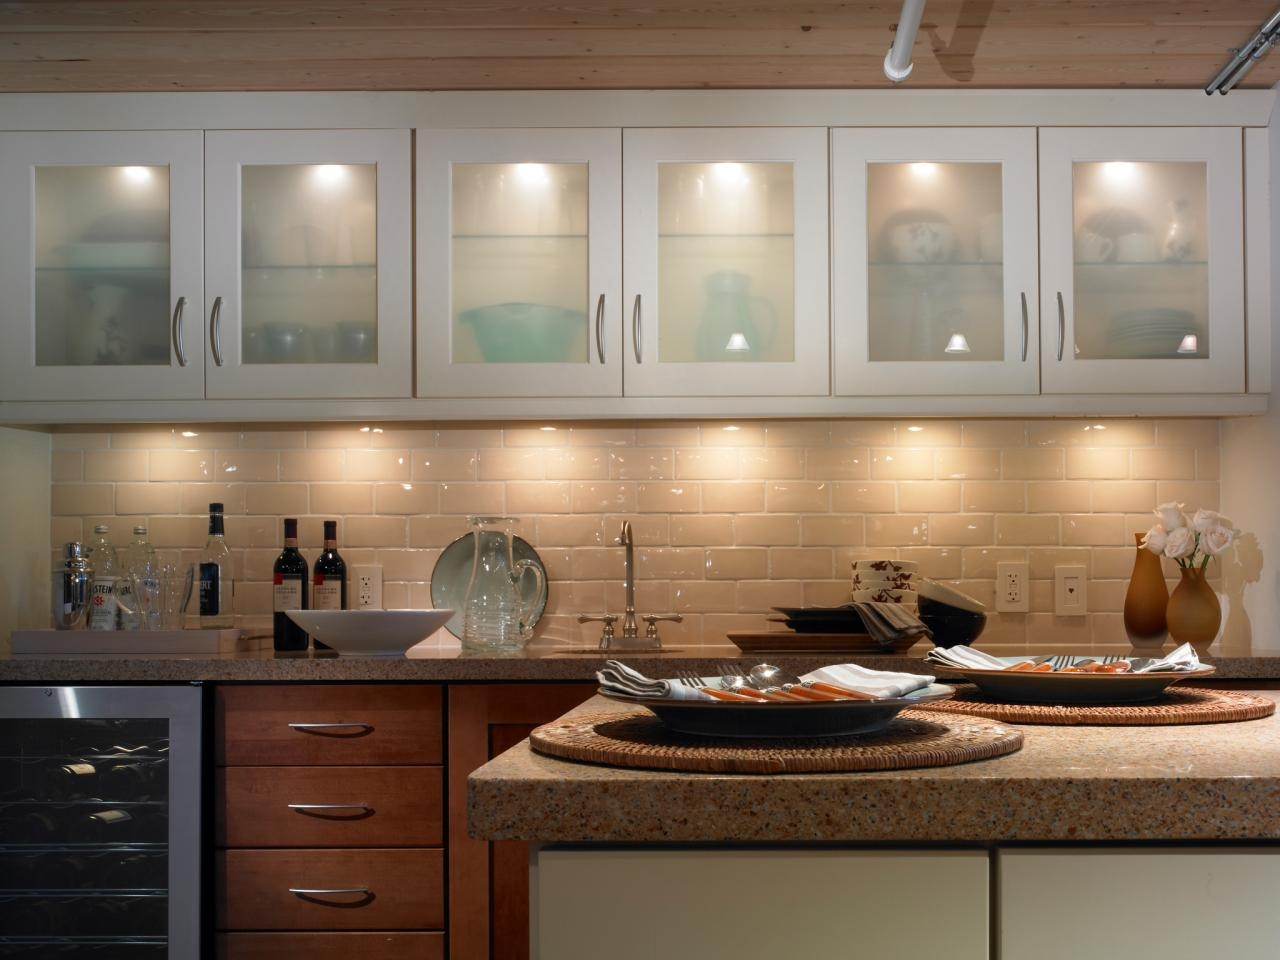 Kitchen Cabinets Lights Inside